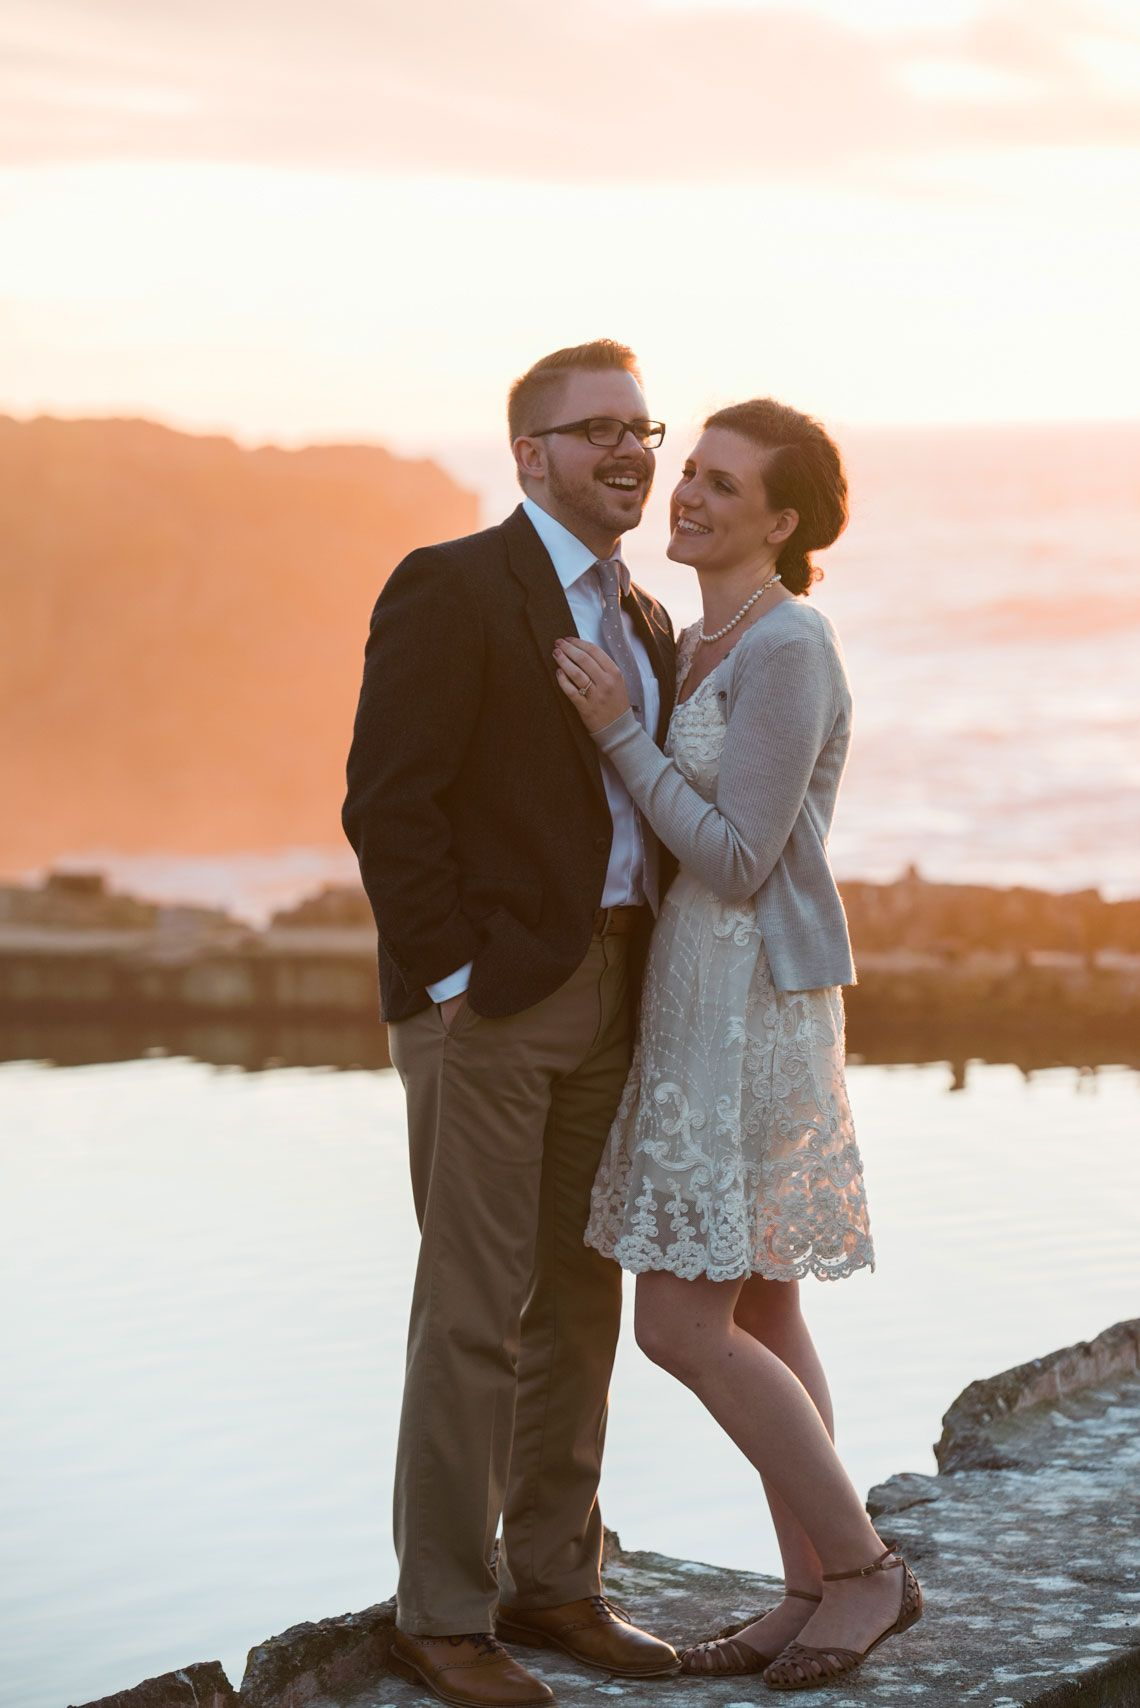 Engagement photo at Sutro Baths in San Francisco  #sutrobaths #sutrobathsengagement #engagementshoot #engagementshootideas #sanfrancisco #sanfranciscoengagement #sanfranciscoshoot